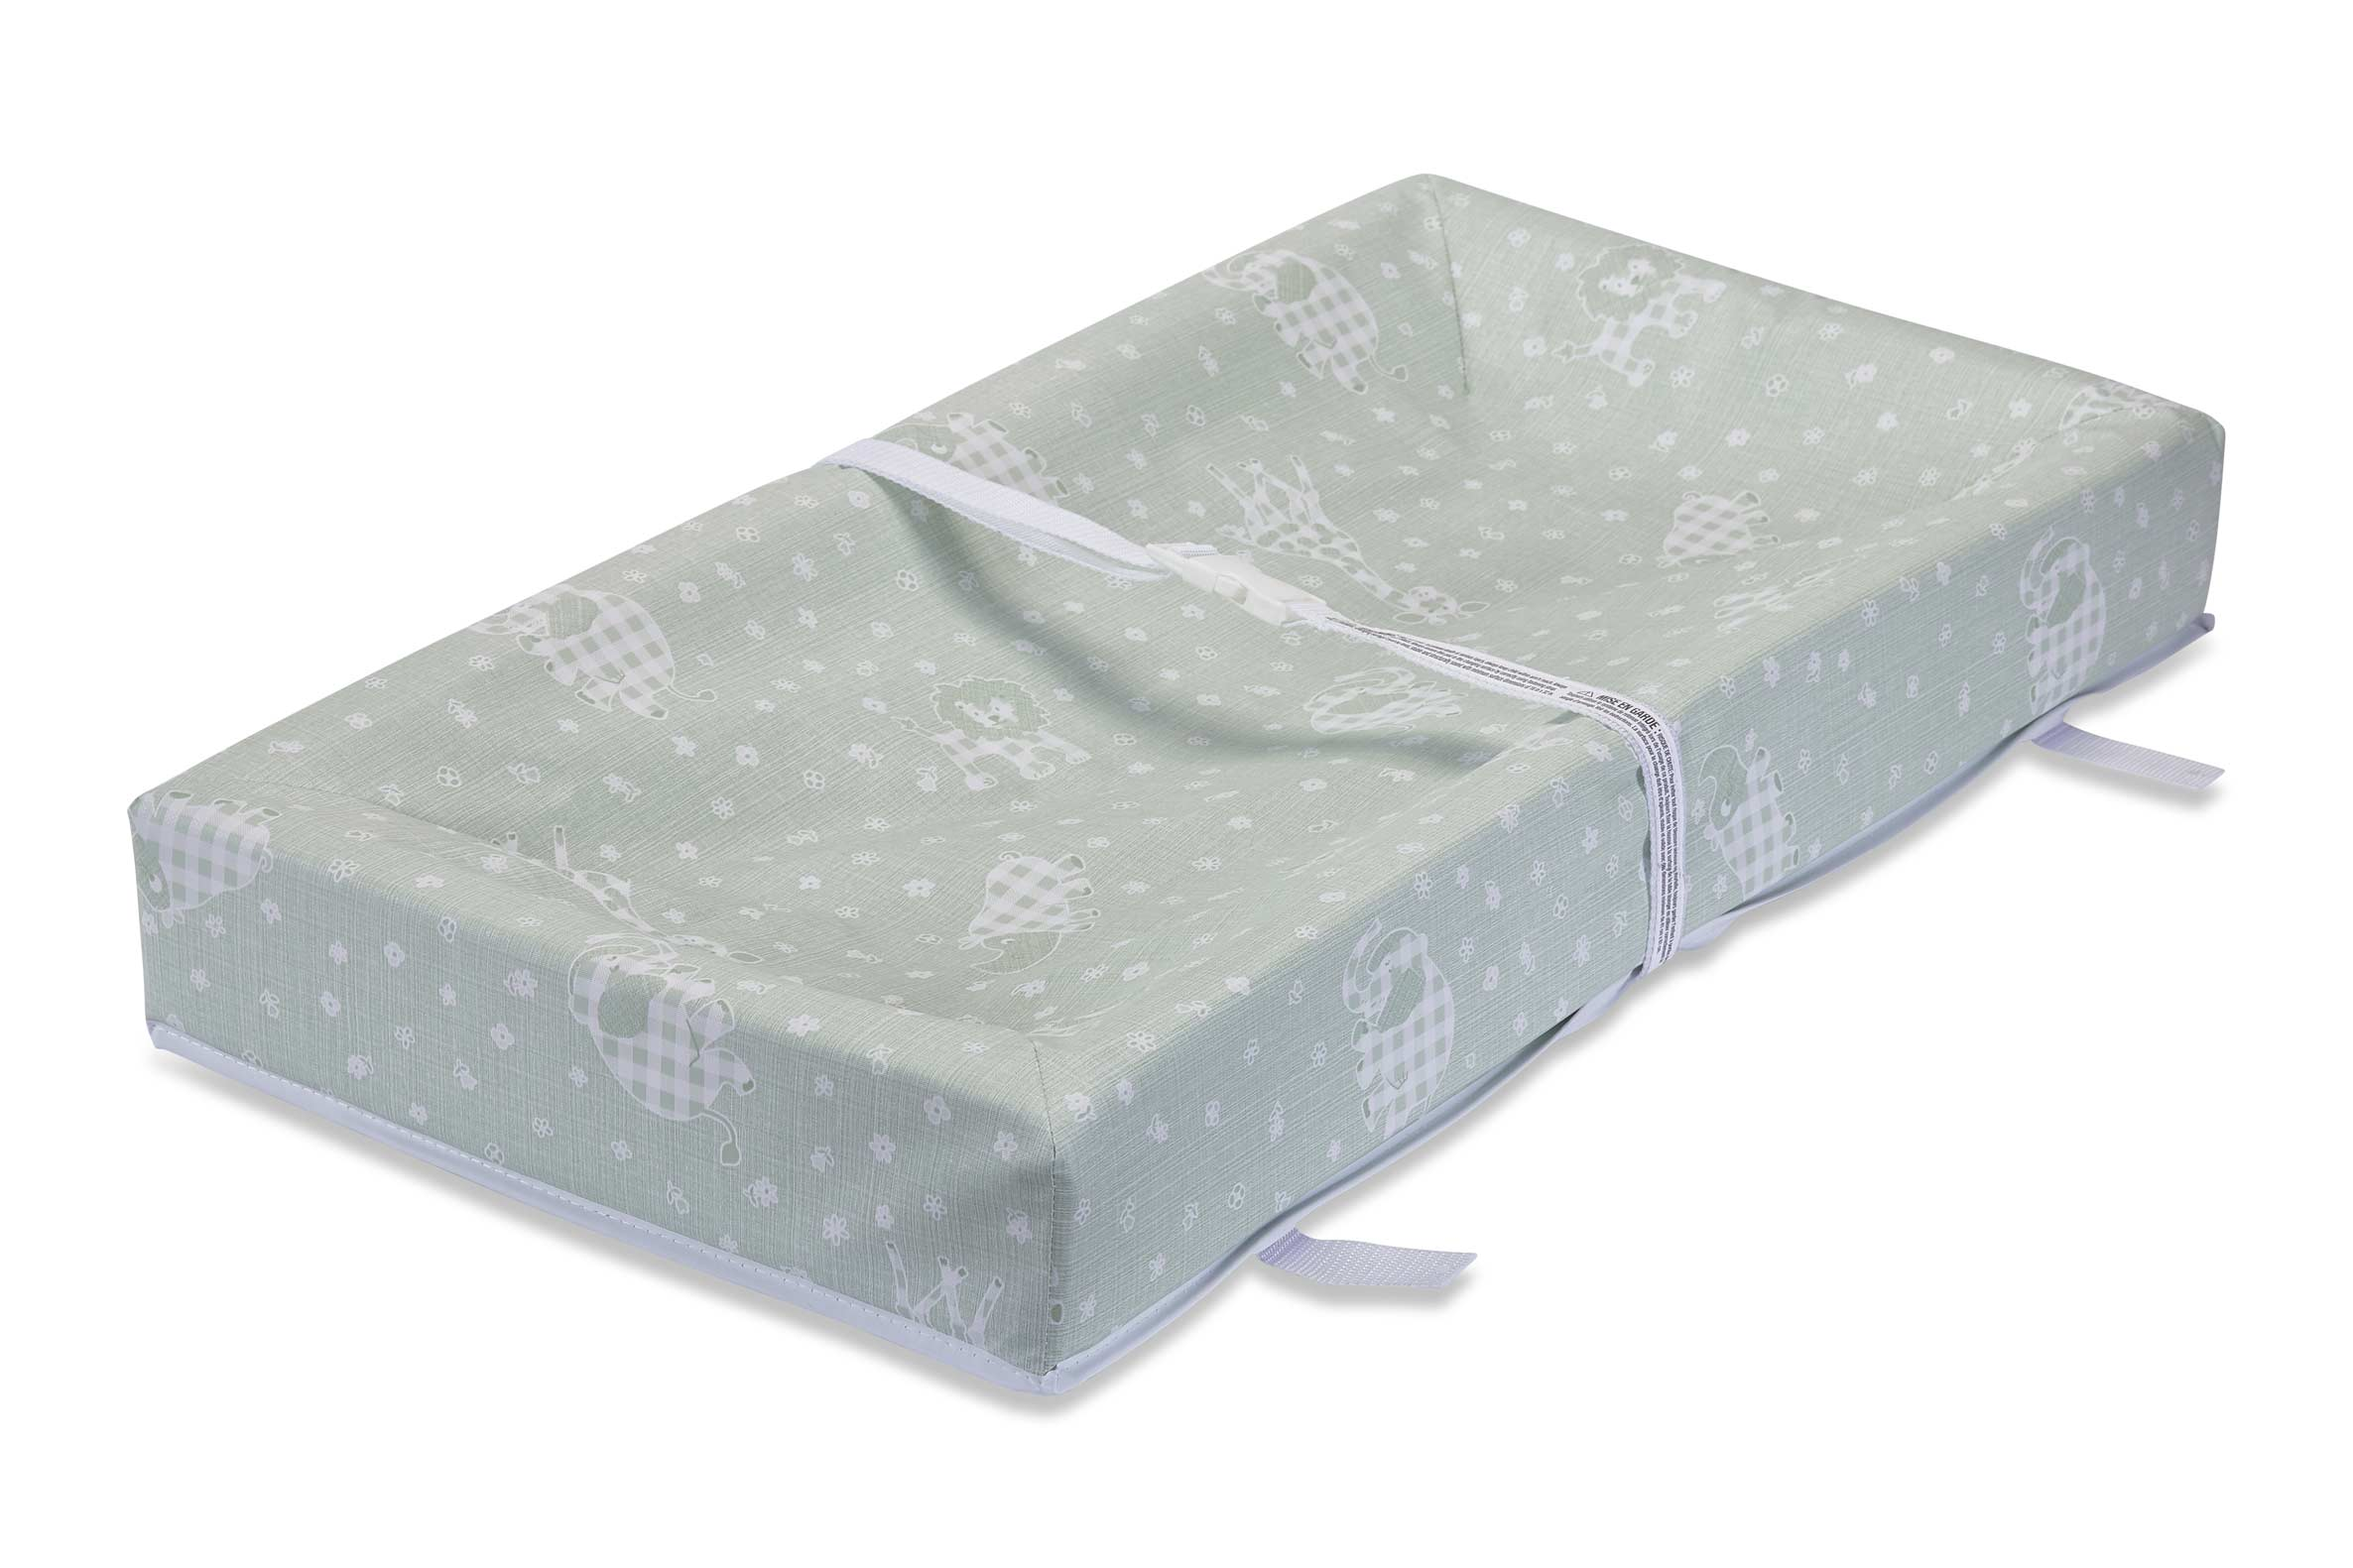 L.A. Baby 4-Sided Square-Corner Changing Pad, Green by L.A. Baby